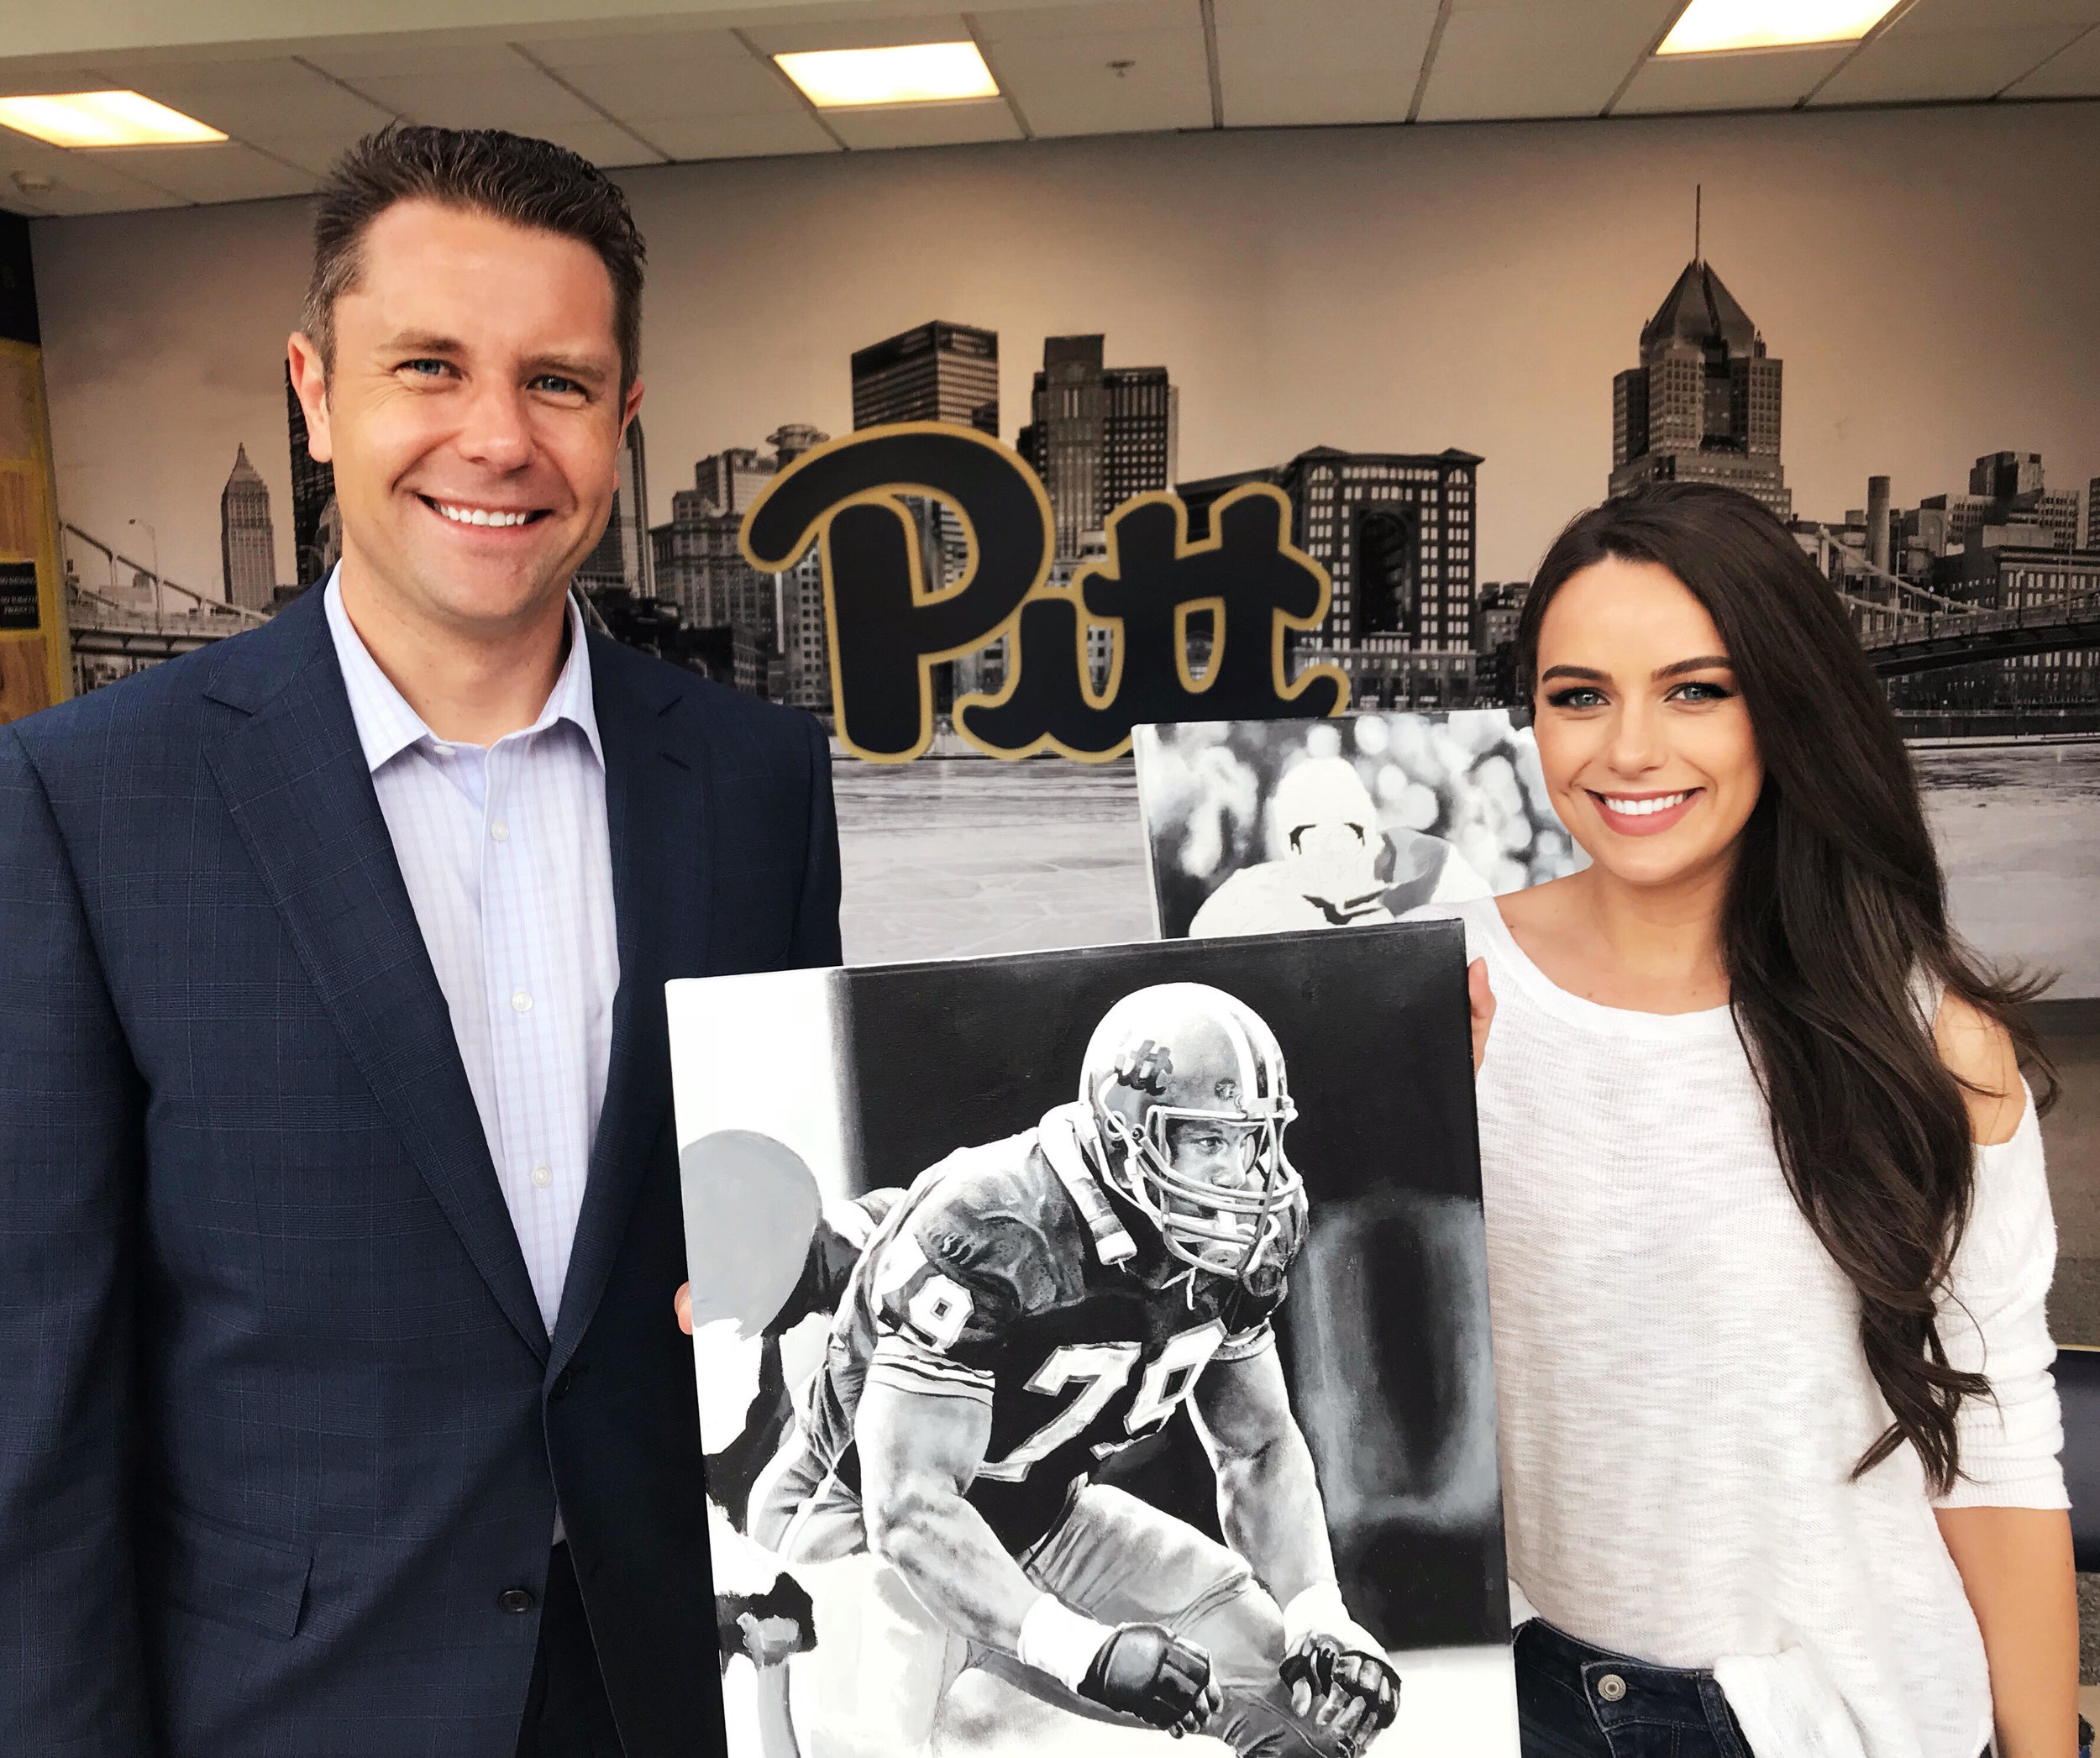 Kait Schoeb with WTAE sports reporter Ryan Recker following her interview with her Bill Fralic  painting